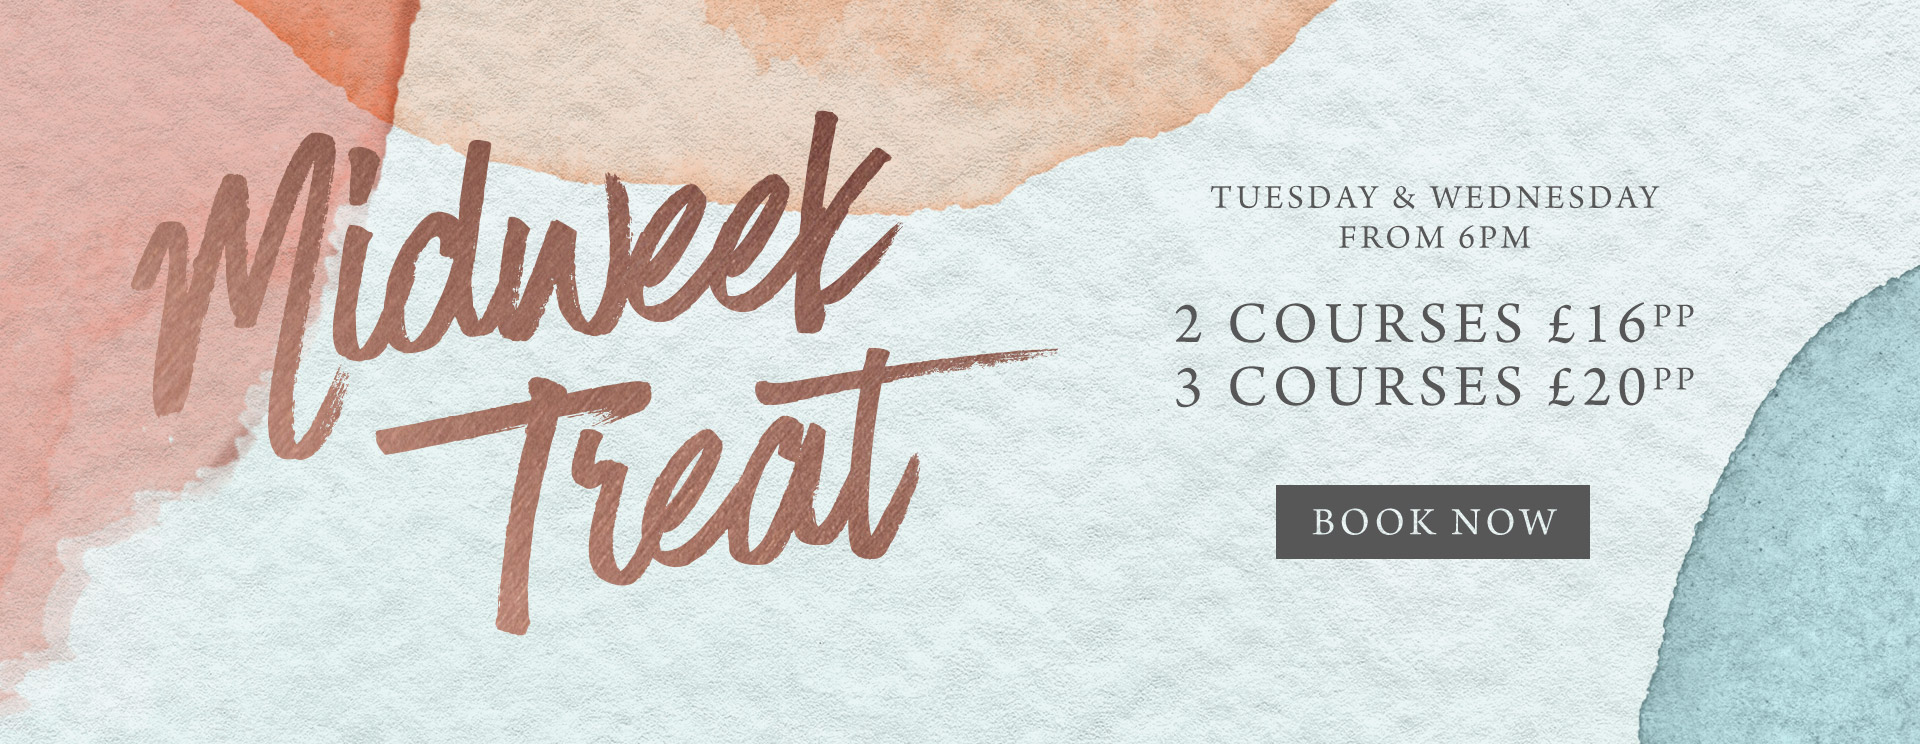 Midweek treat at The Ship Inn - Book now